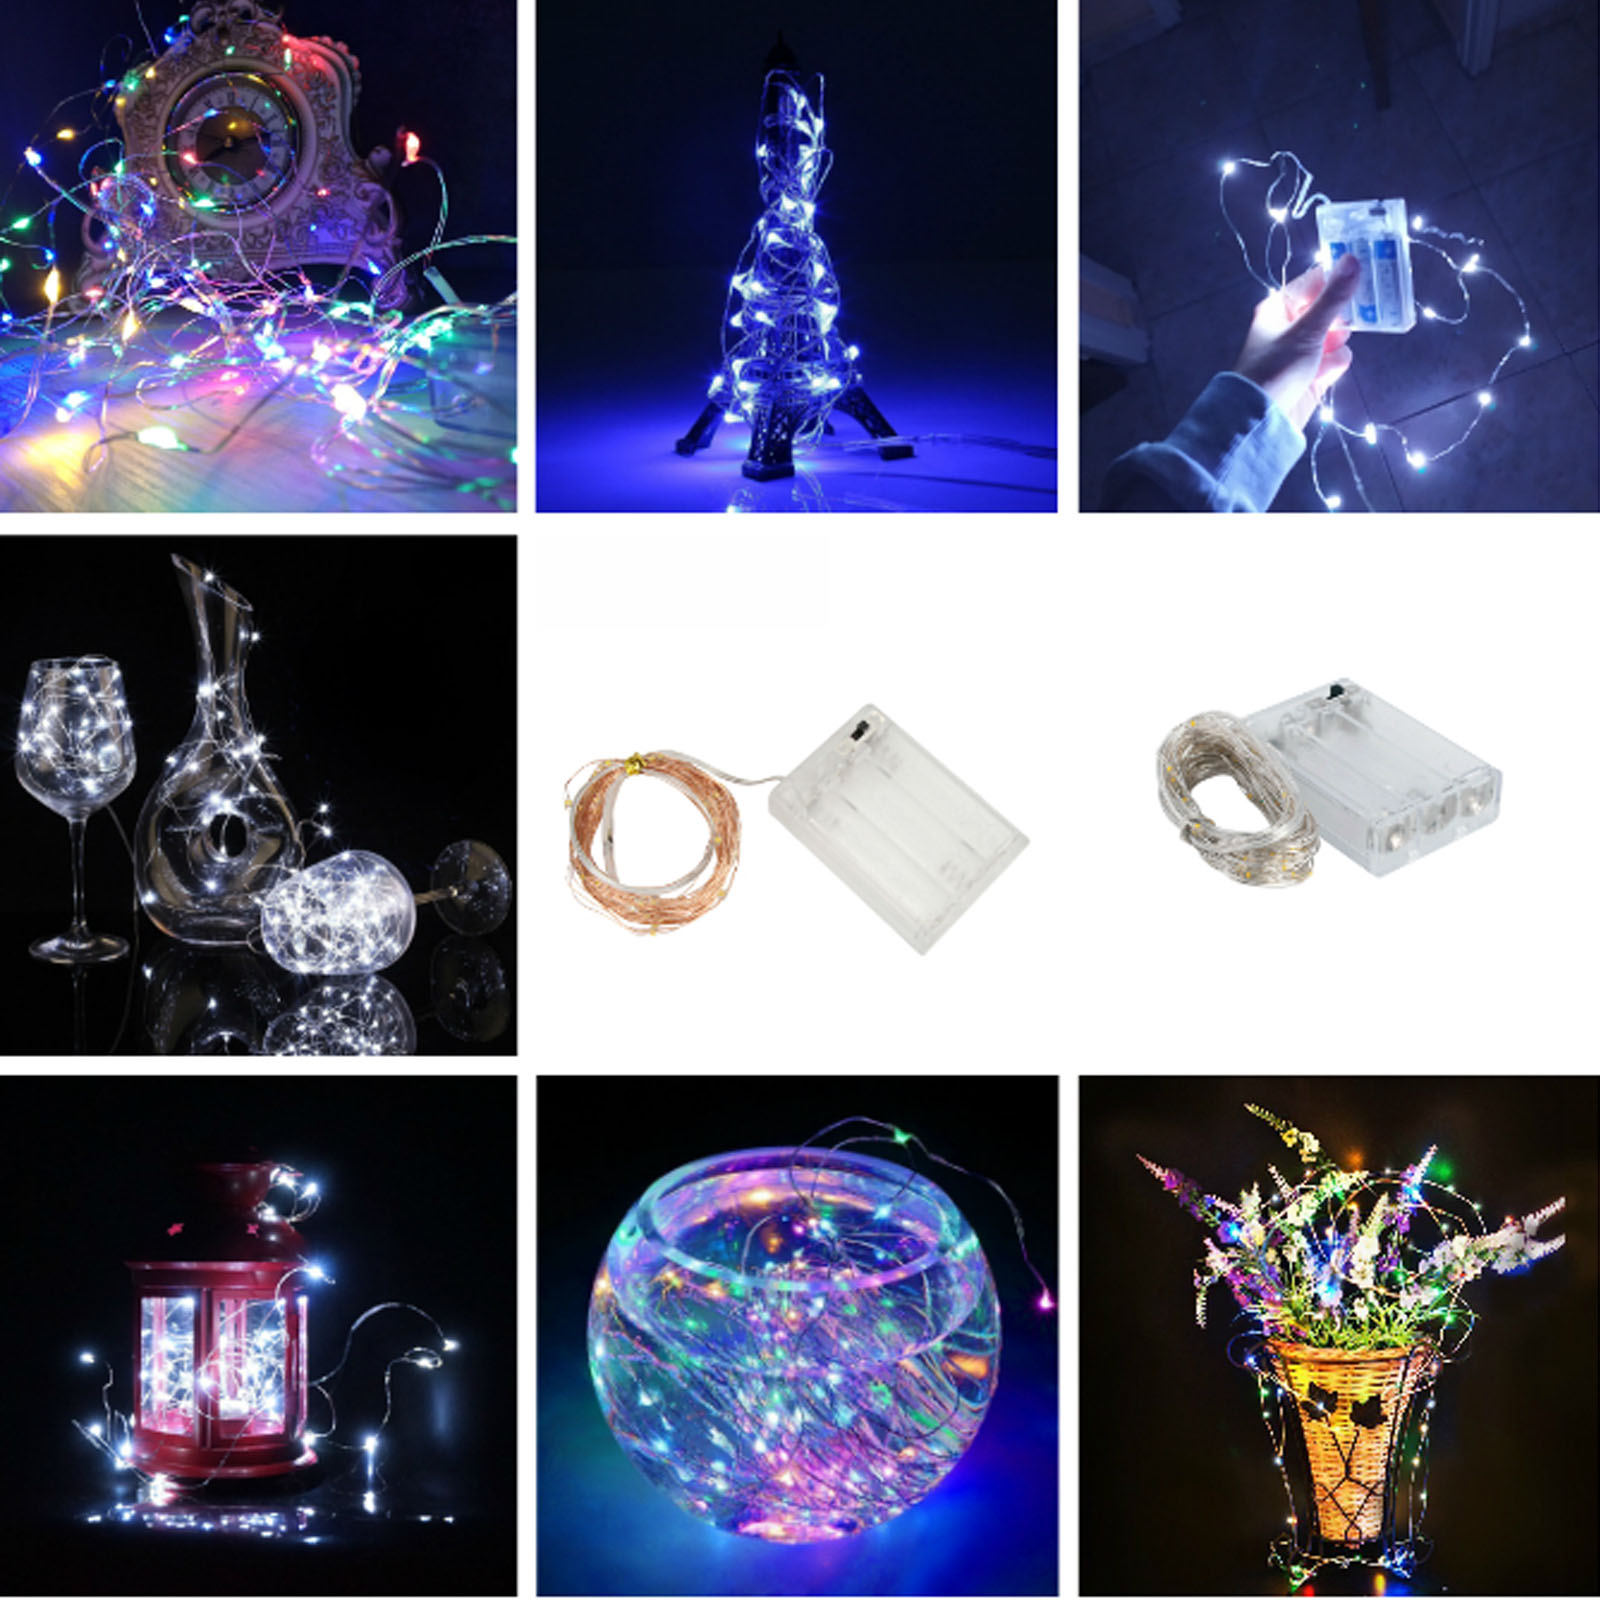 2M 3M 5M 10M Outdoor LED String Lights Holiday Lighting Fairy Garland For Christmas Tree Wedding Party Decor Powered  Battery